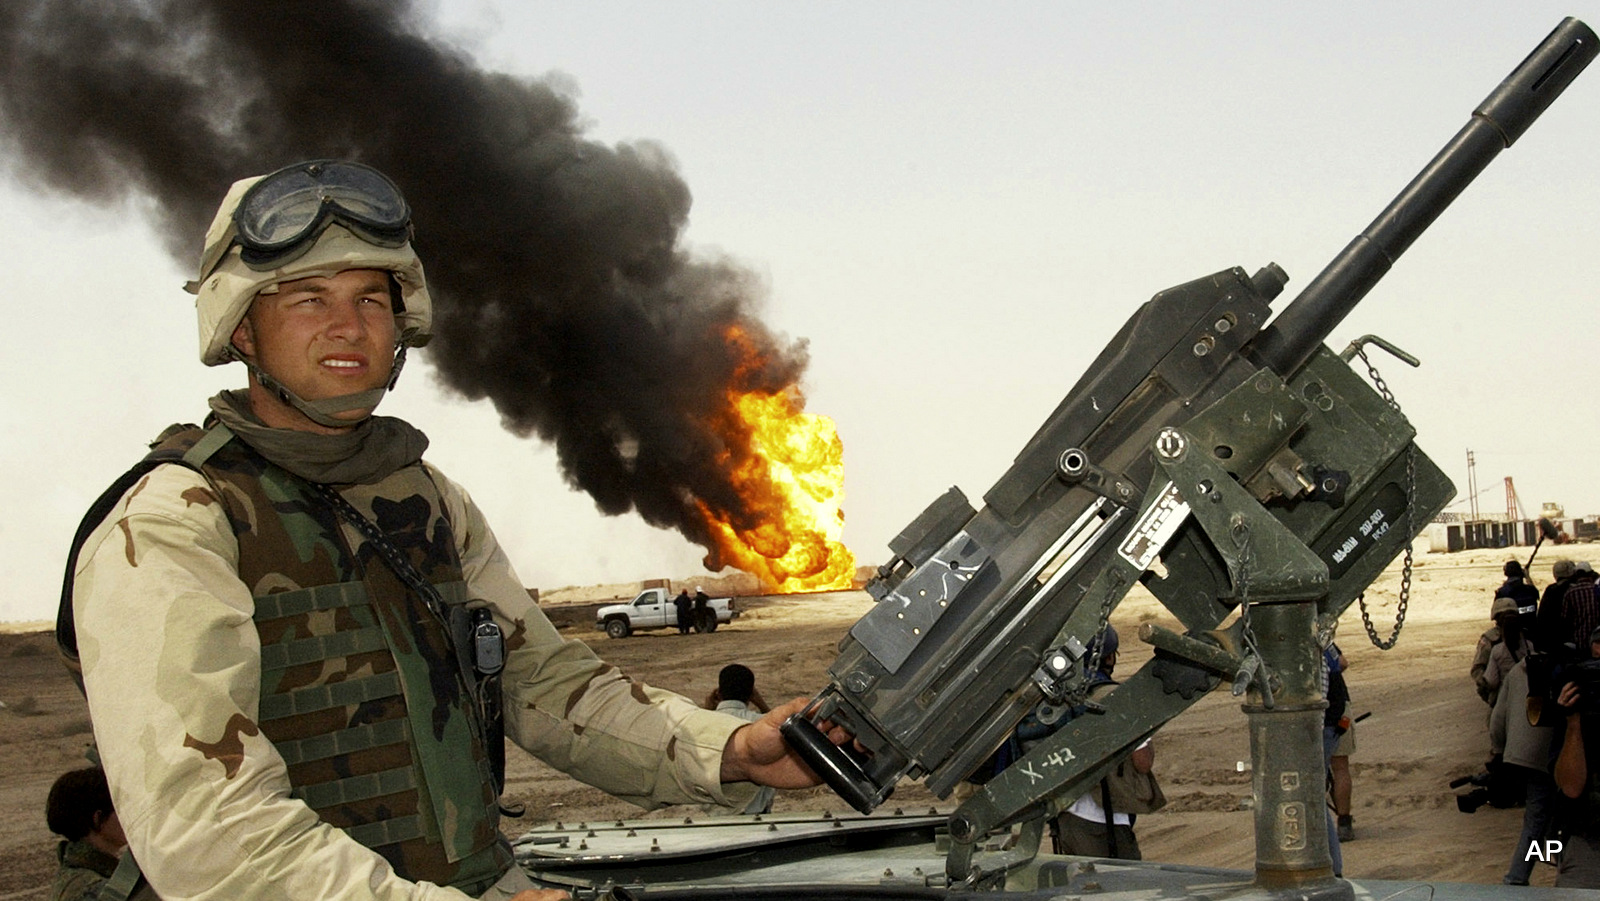 In this April 1, 2003 file photo, a U.S. soldier stands guard on top of a humvee as oil workers work on oil well fires at Rumaila oil field, southern Iraq.